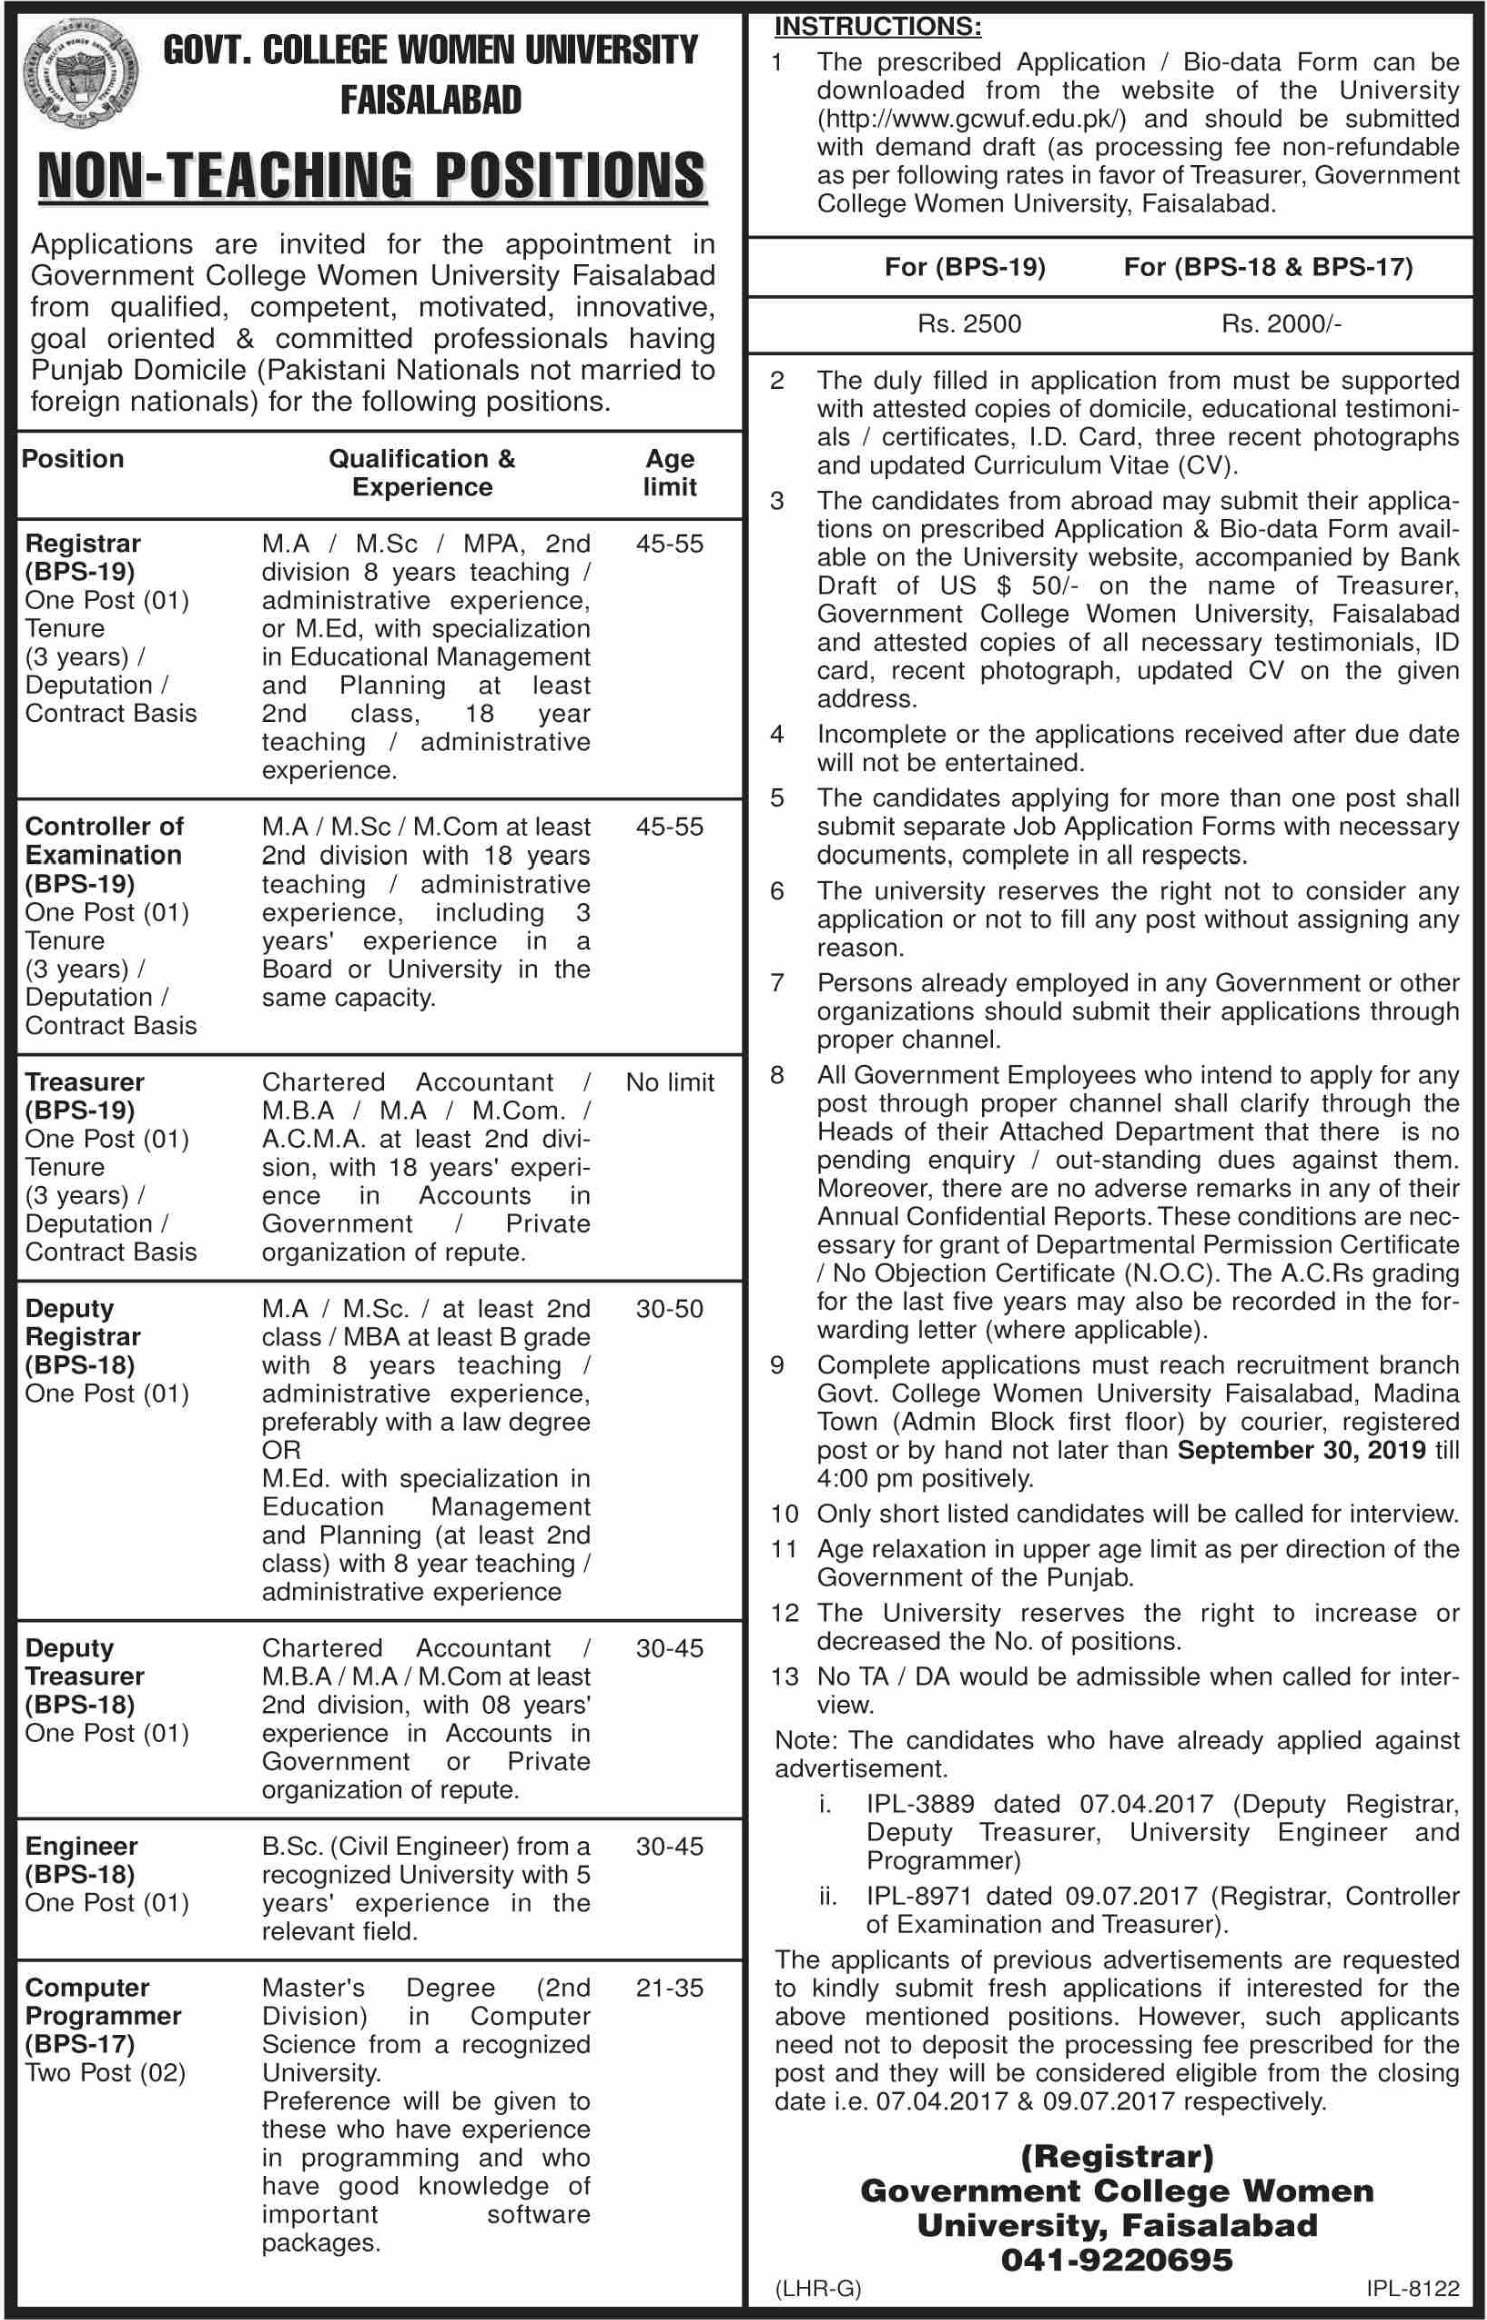 Govt. College Women University Faisalabad GCWUF Jobs 2019